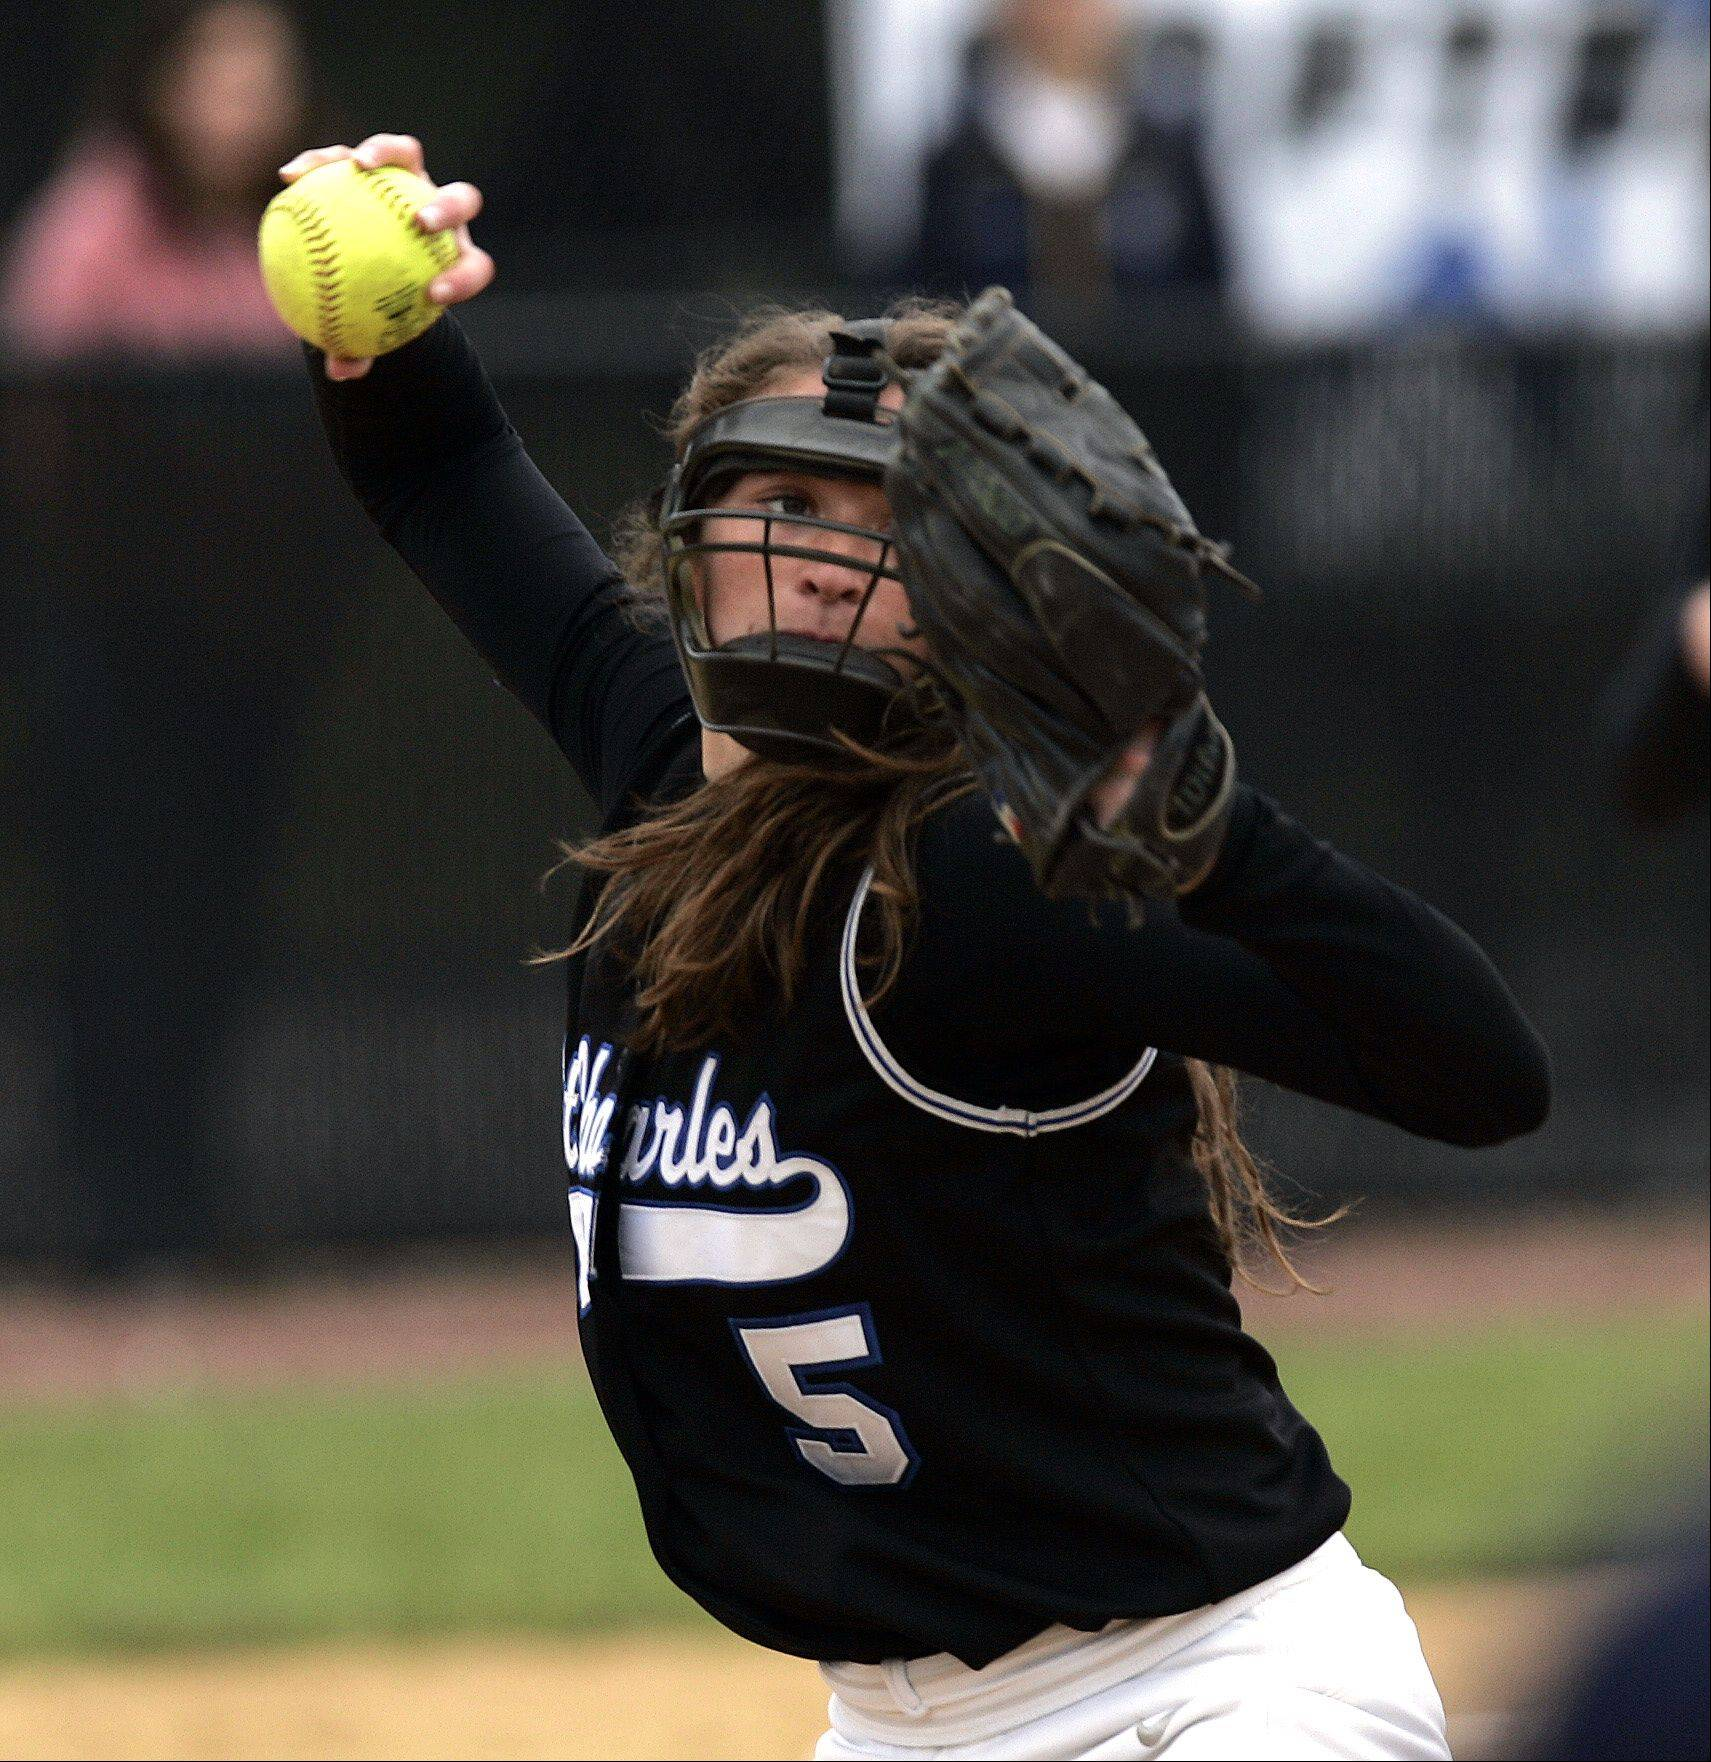 St. Charles North's Sabrina Rabin throws to first during the Class 4A regional softball final at St. Charles North Saturday.